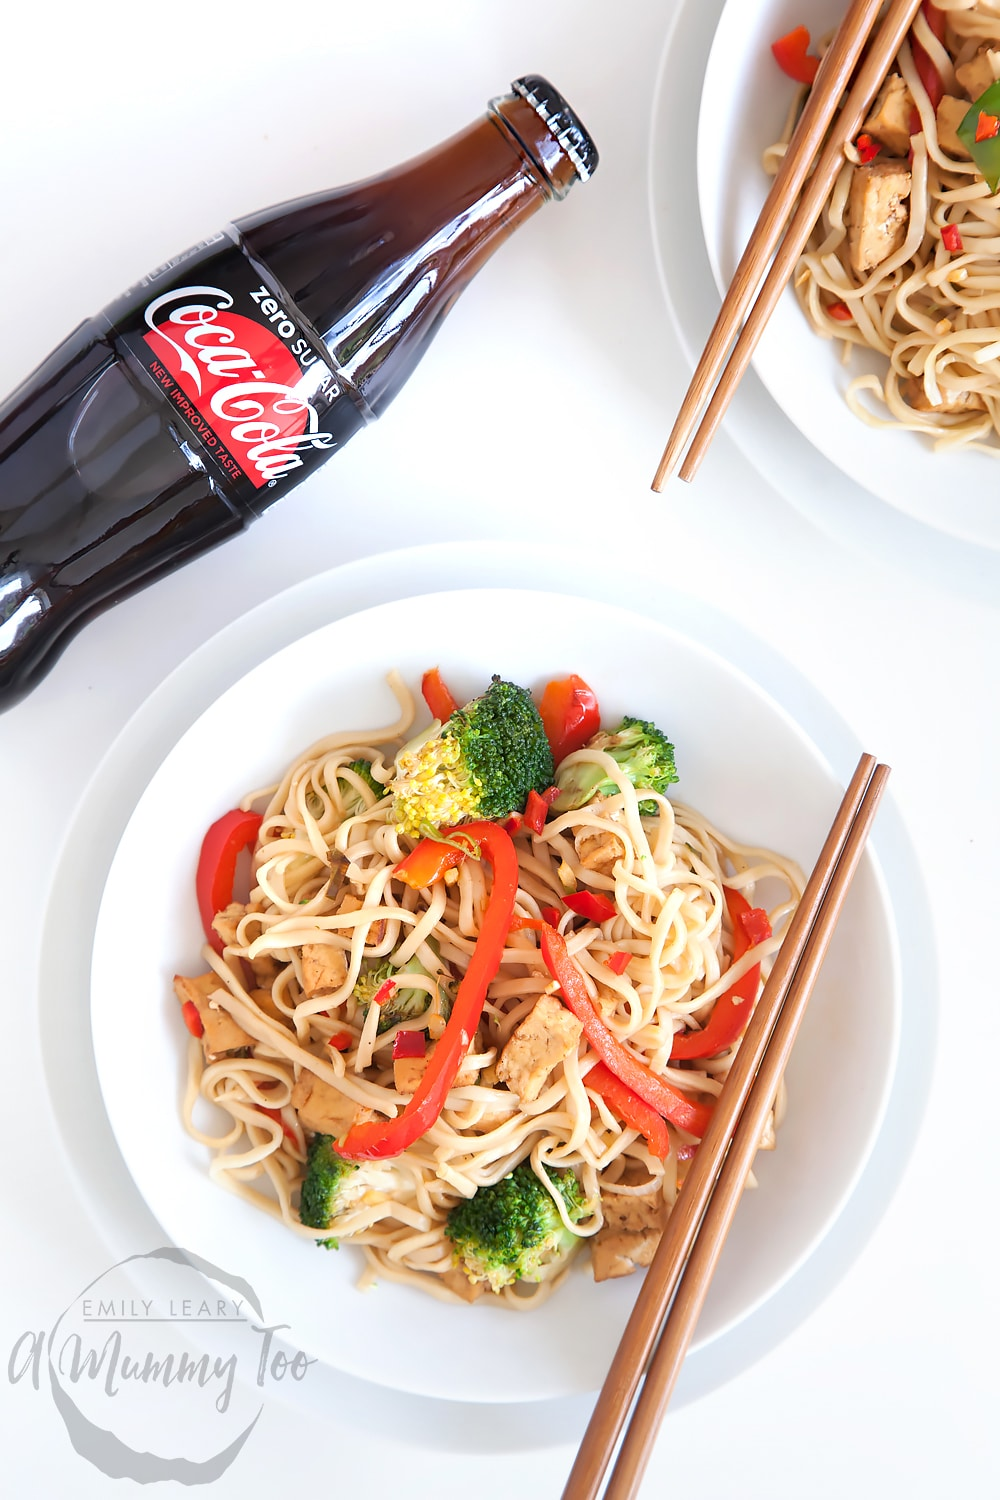 A nutritious tofu and vegetable noodle stir fry, flavoured with Coca-Cola Zero Sugar